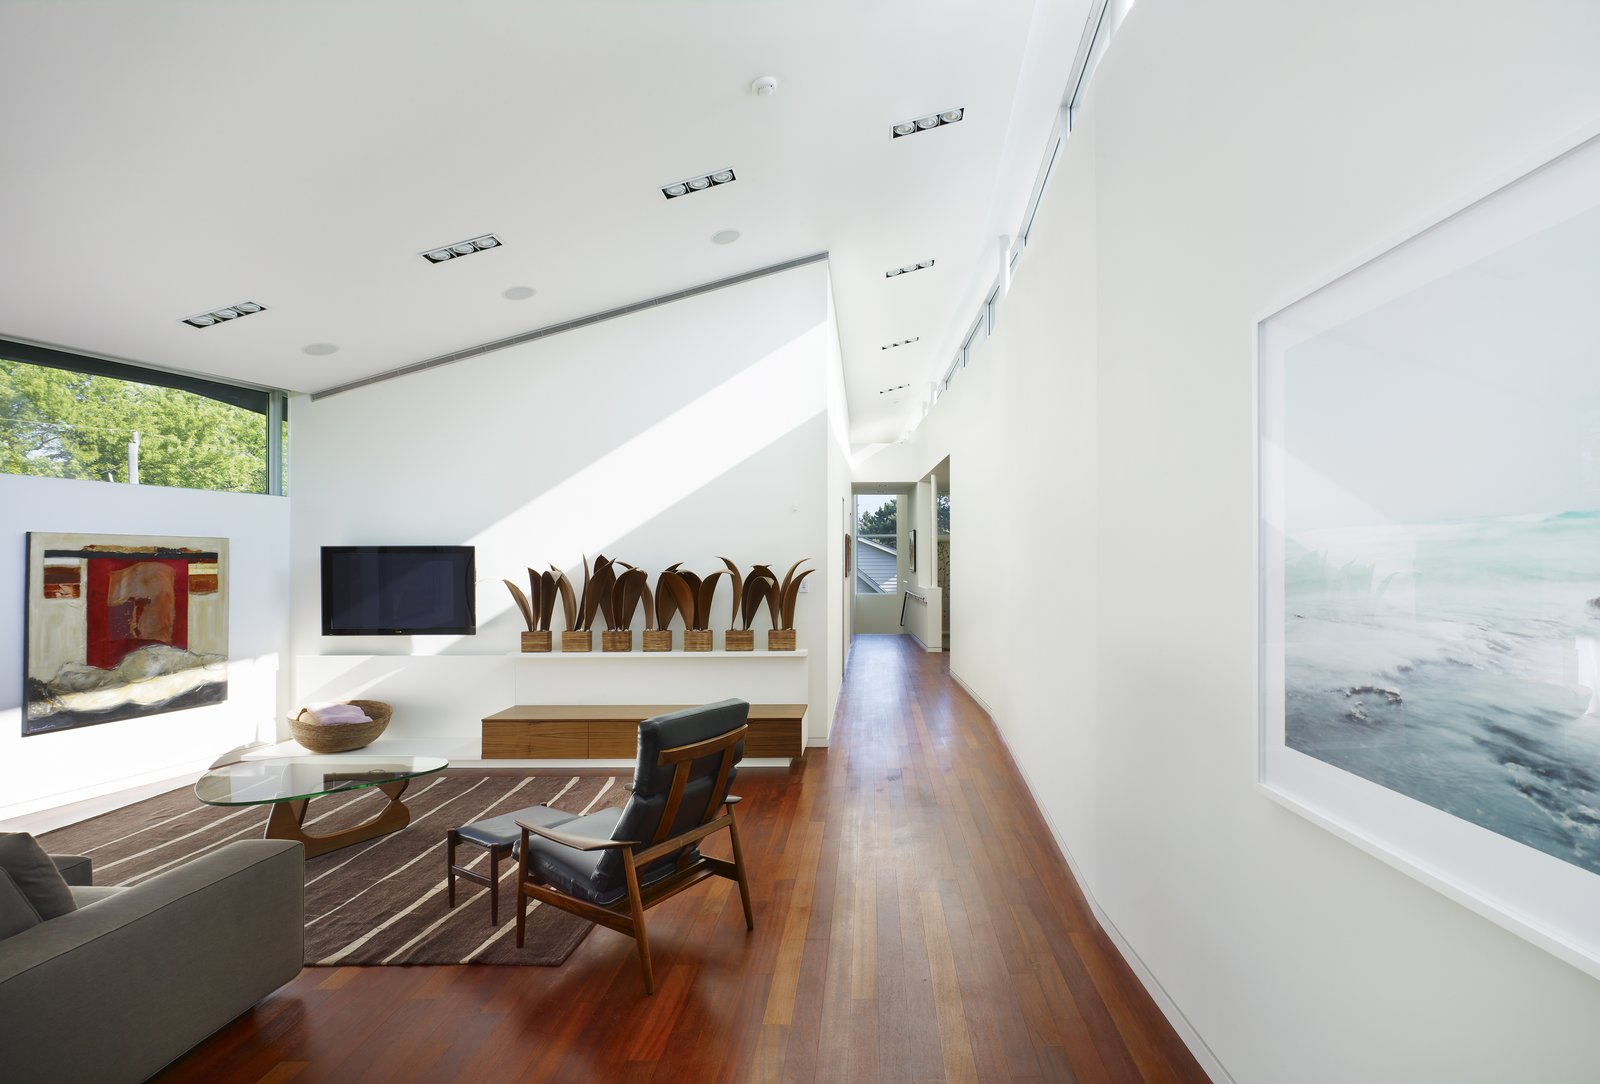 A tranquil seating area showcases the client's art and Mid-Century furniture classics.   Davis Residence by Abramson Teiger Architects